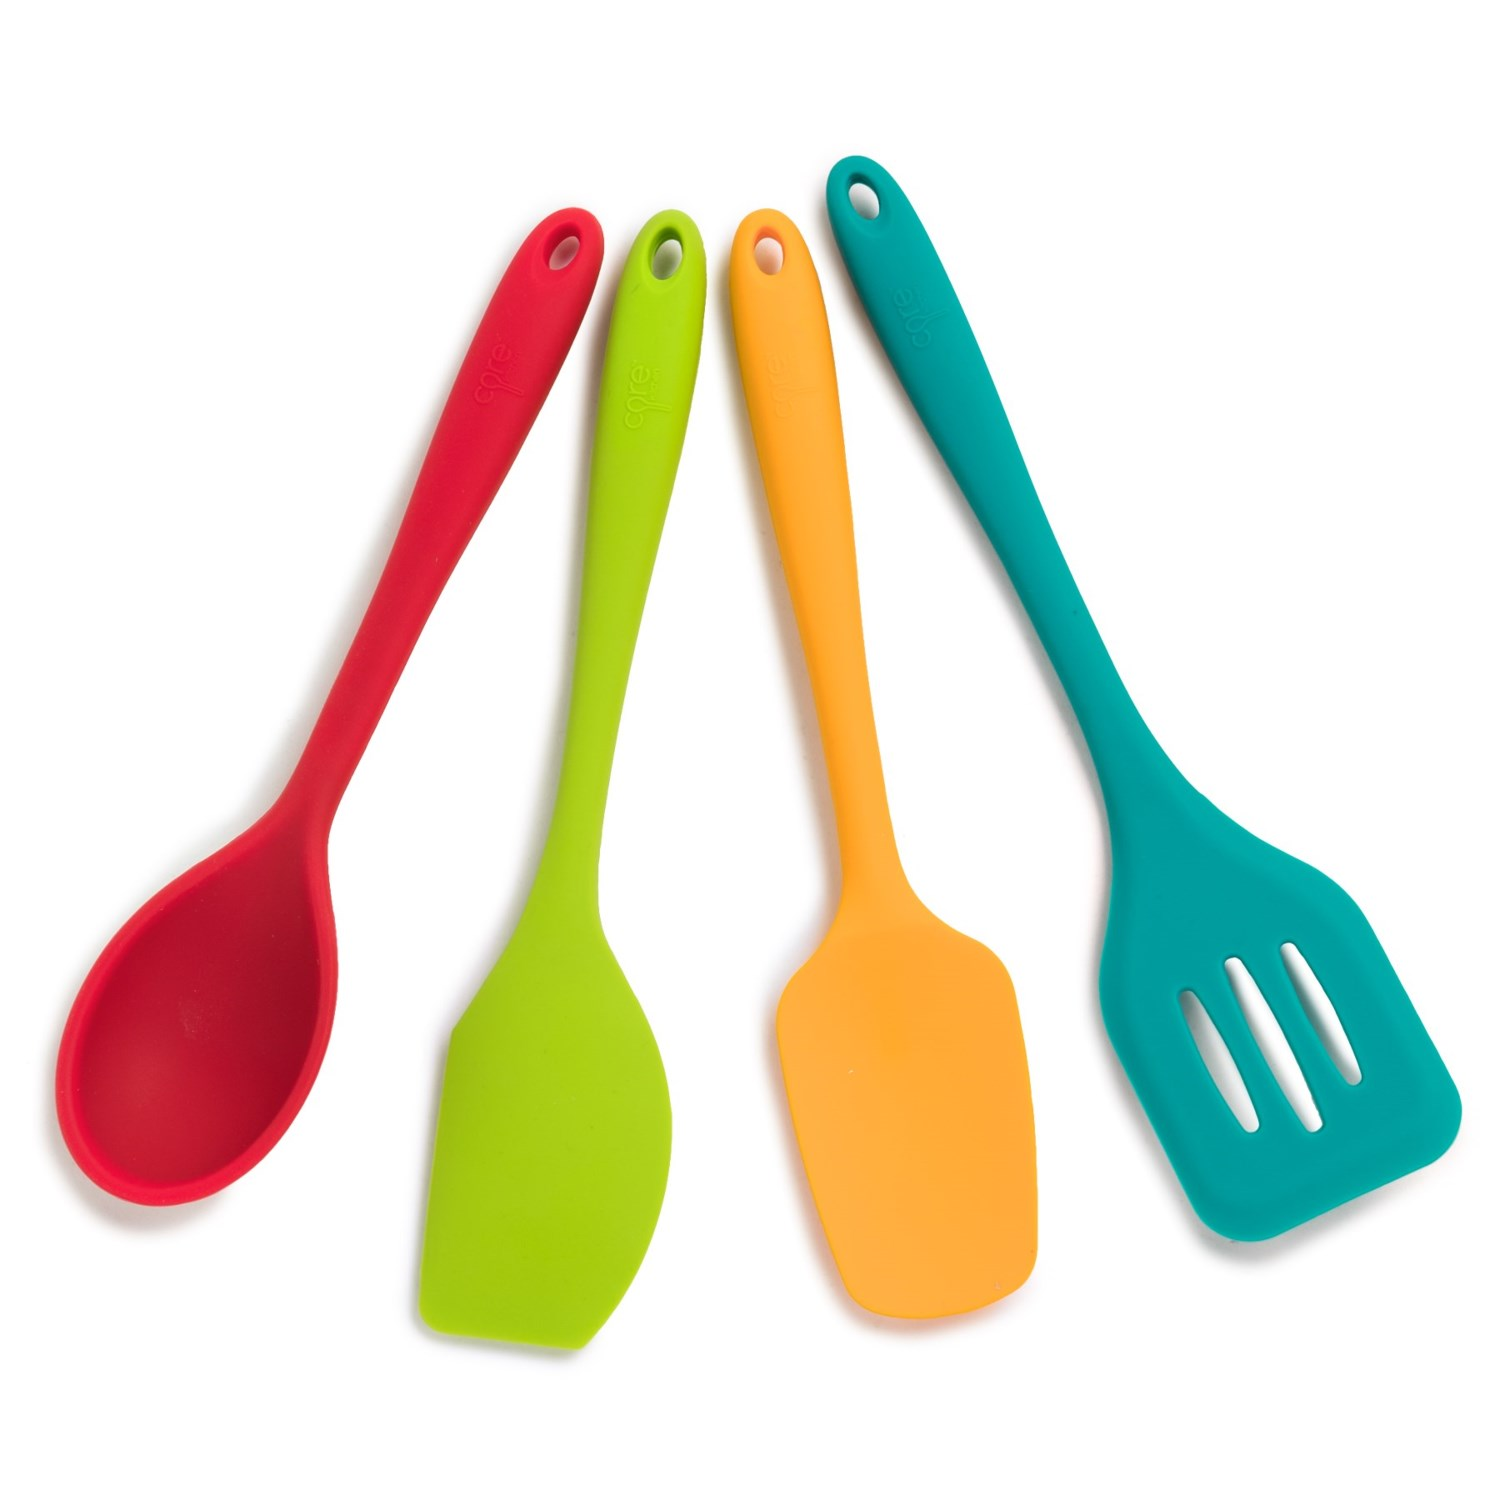 Core Bamboo Silicone Baking Utensils Set of 4 Save 53%